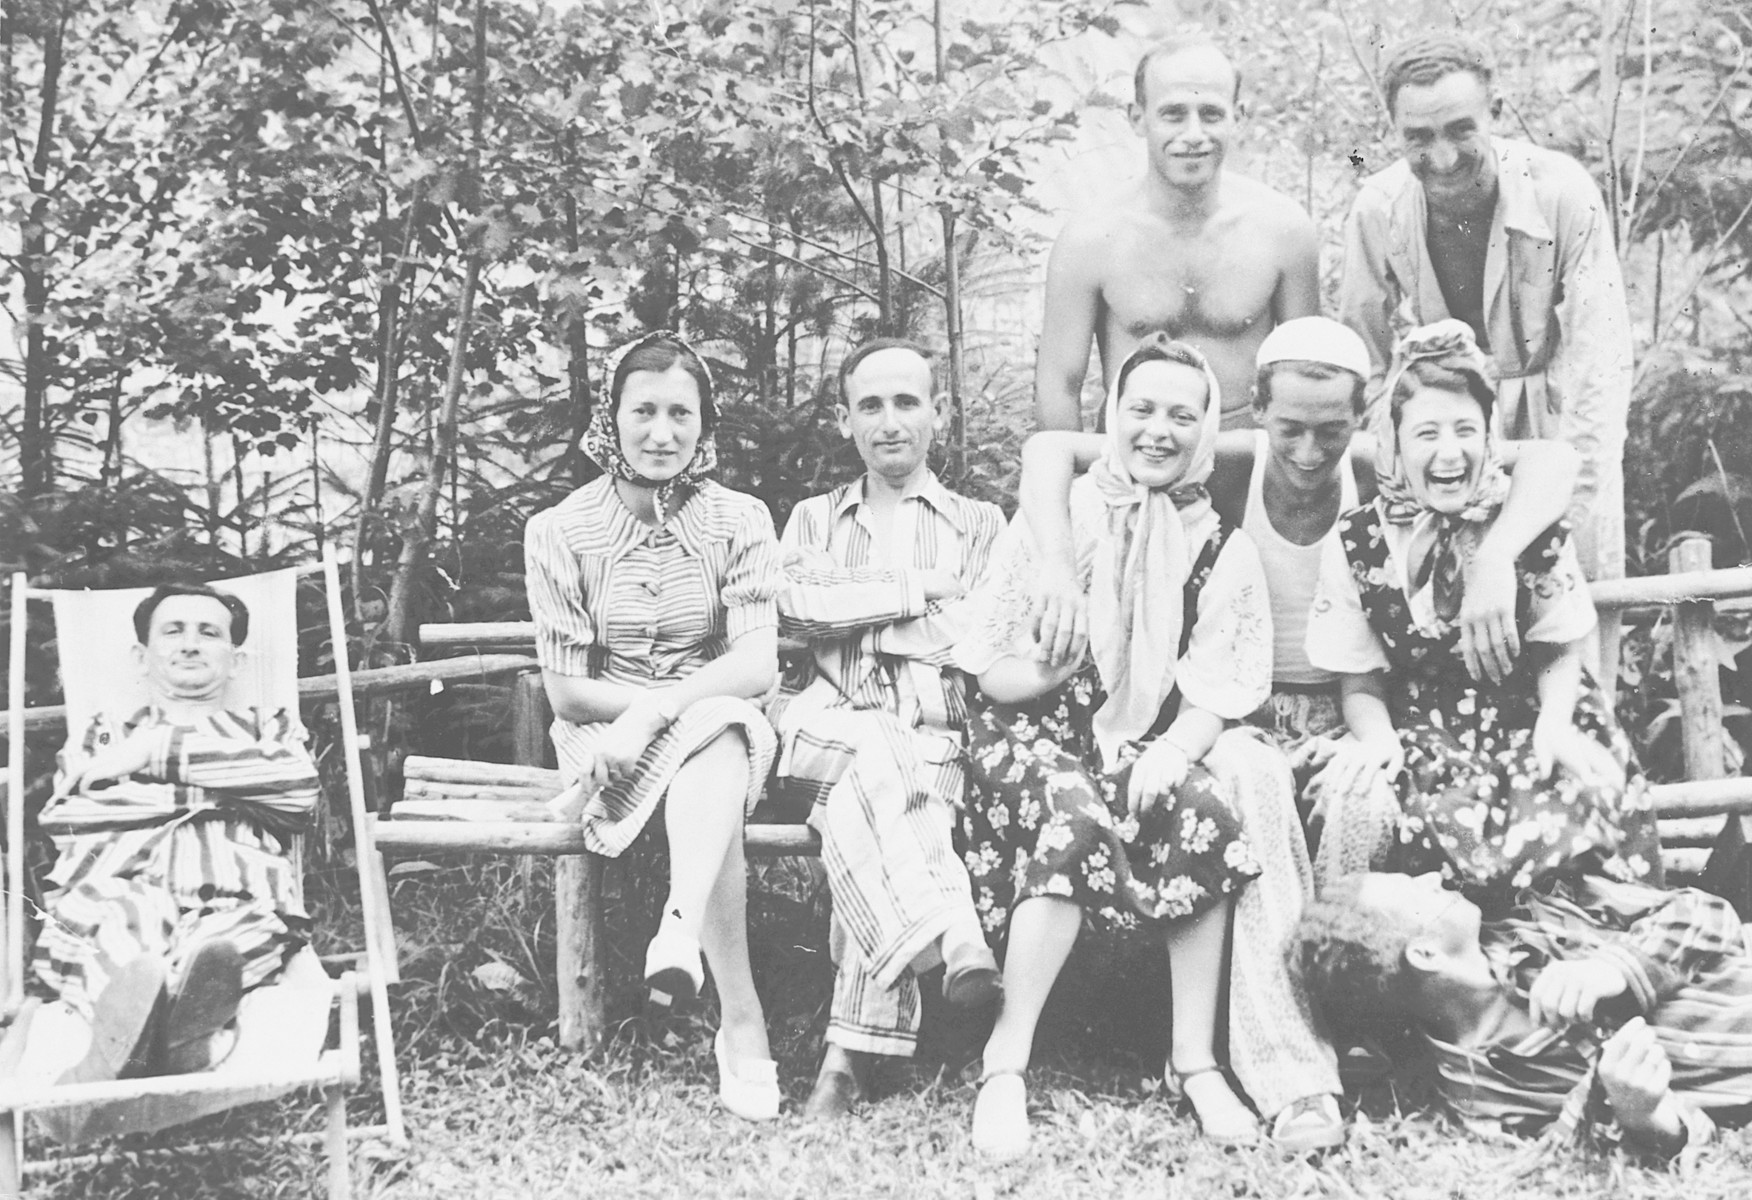 """A group of young adults relaxes at a resort """"Albina Färbera"""" in the woods [probably in the vicinity of Obertin].  Among those pictured is Simon Ruder."""